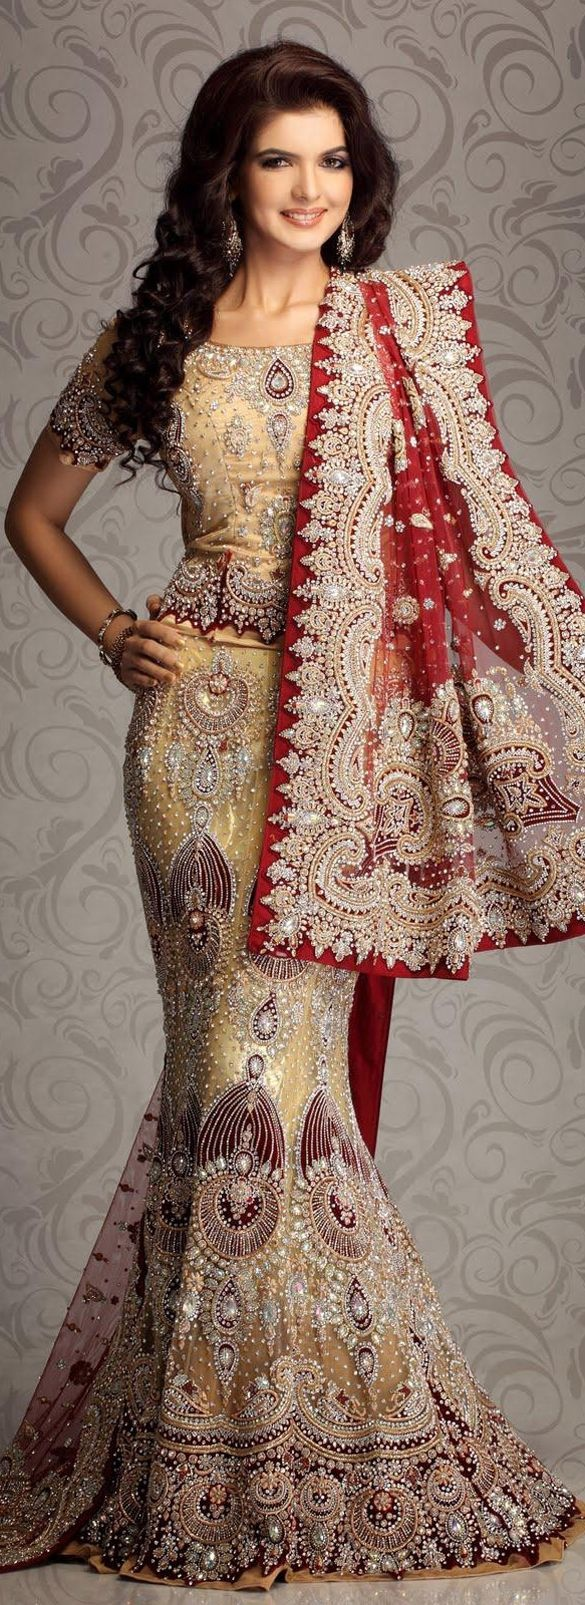 $1996.82 Beige Maroon Net Bridal Lehengas 8777 With Unstitched Blouse